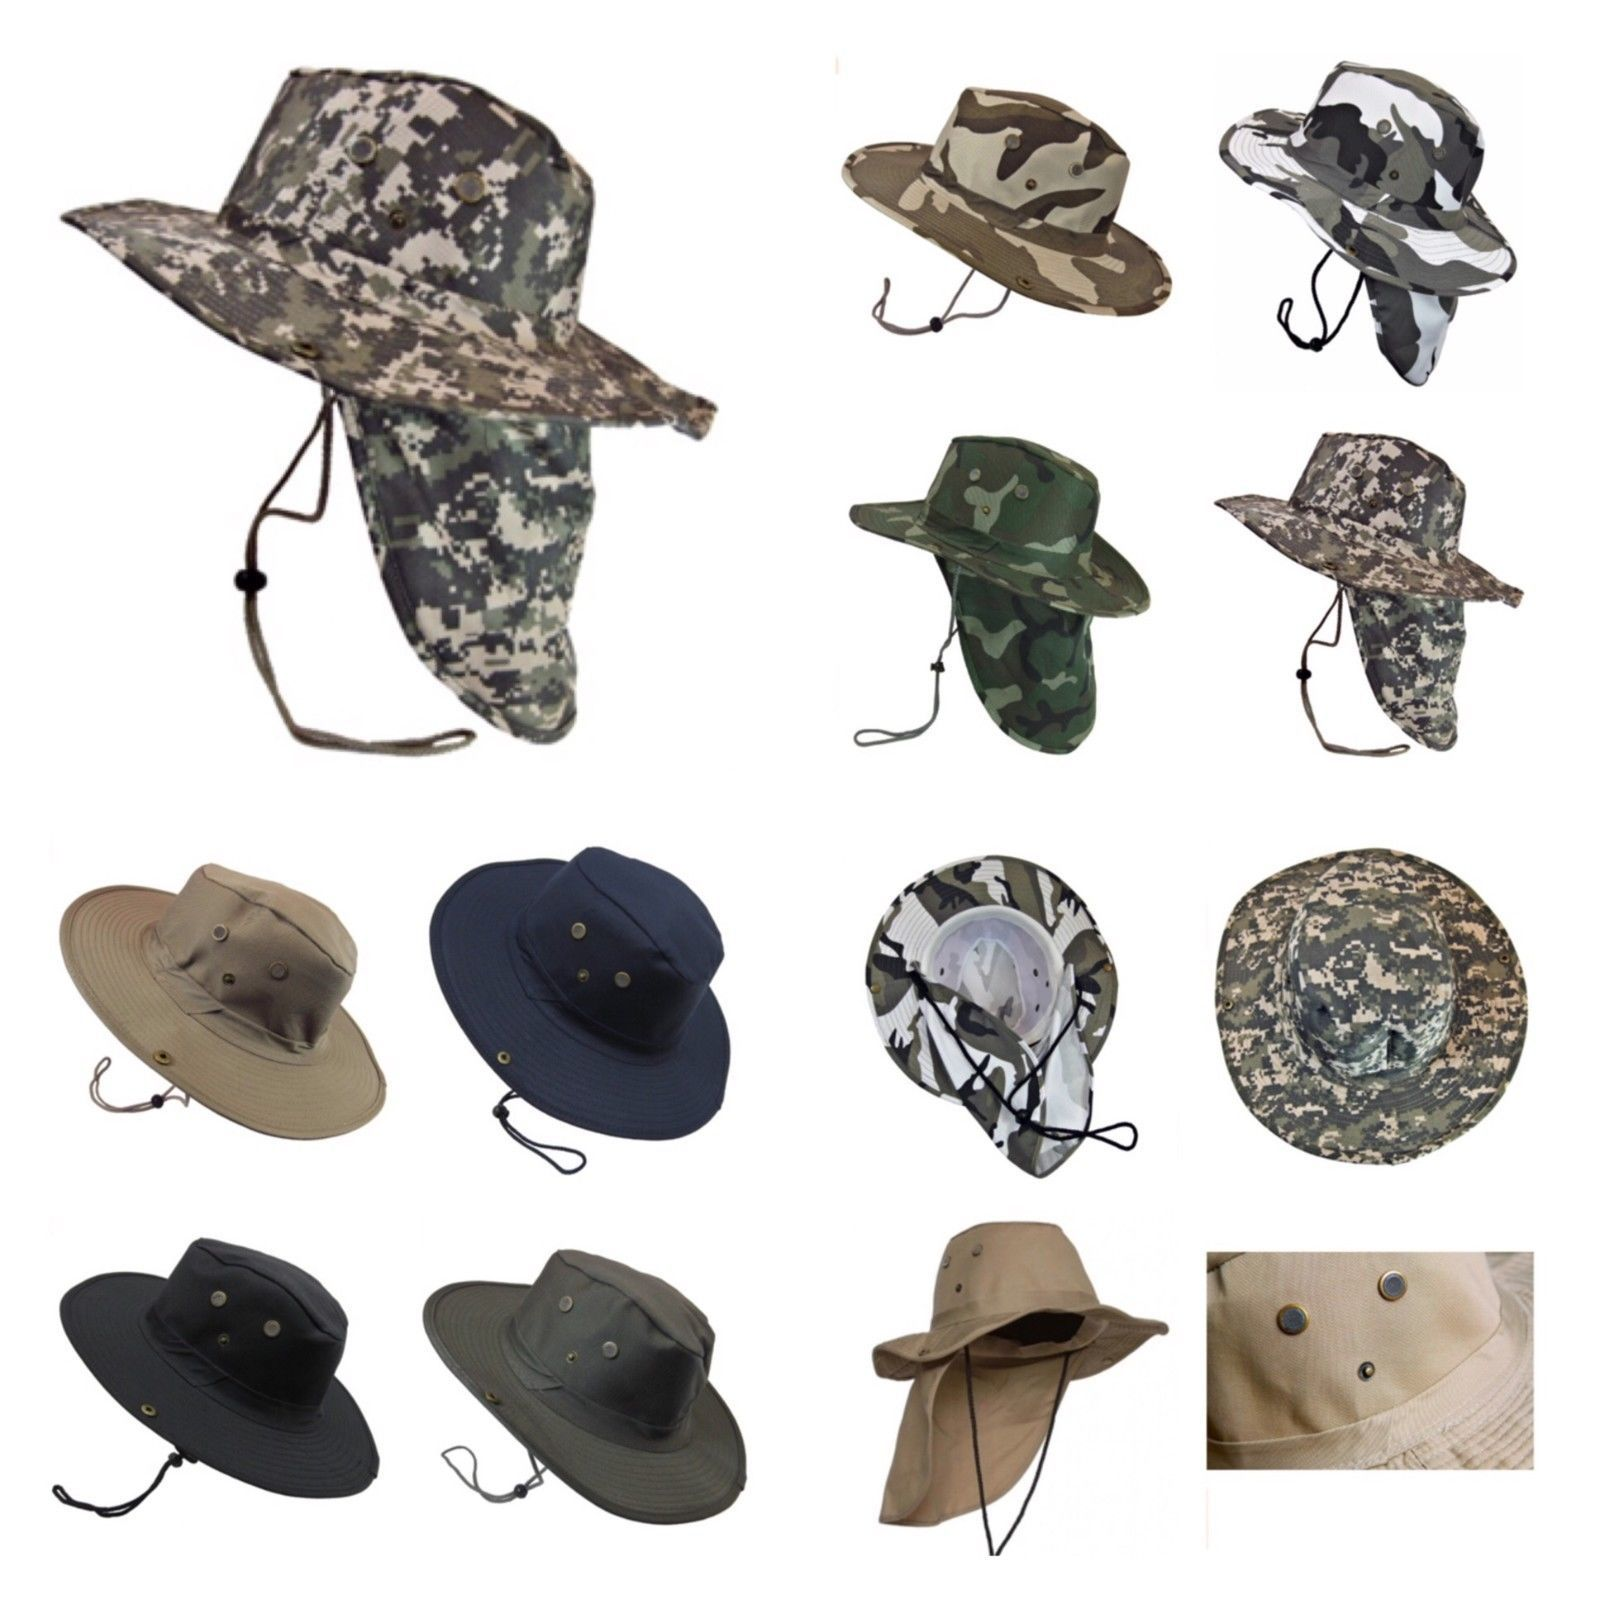 8cbee7d1c7f Boonie Fishing Hiking Army Military Snap Brim Neck Cover Bucket Sun Flap  Hat Cap